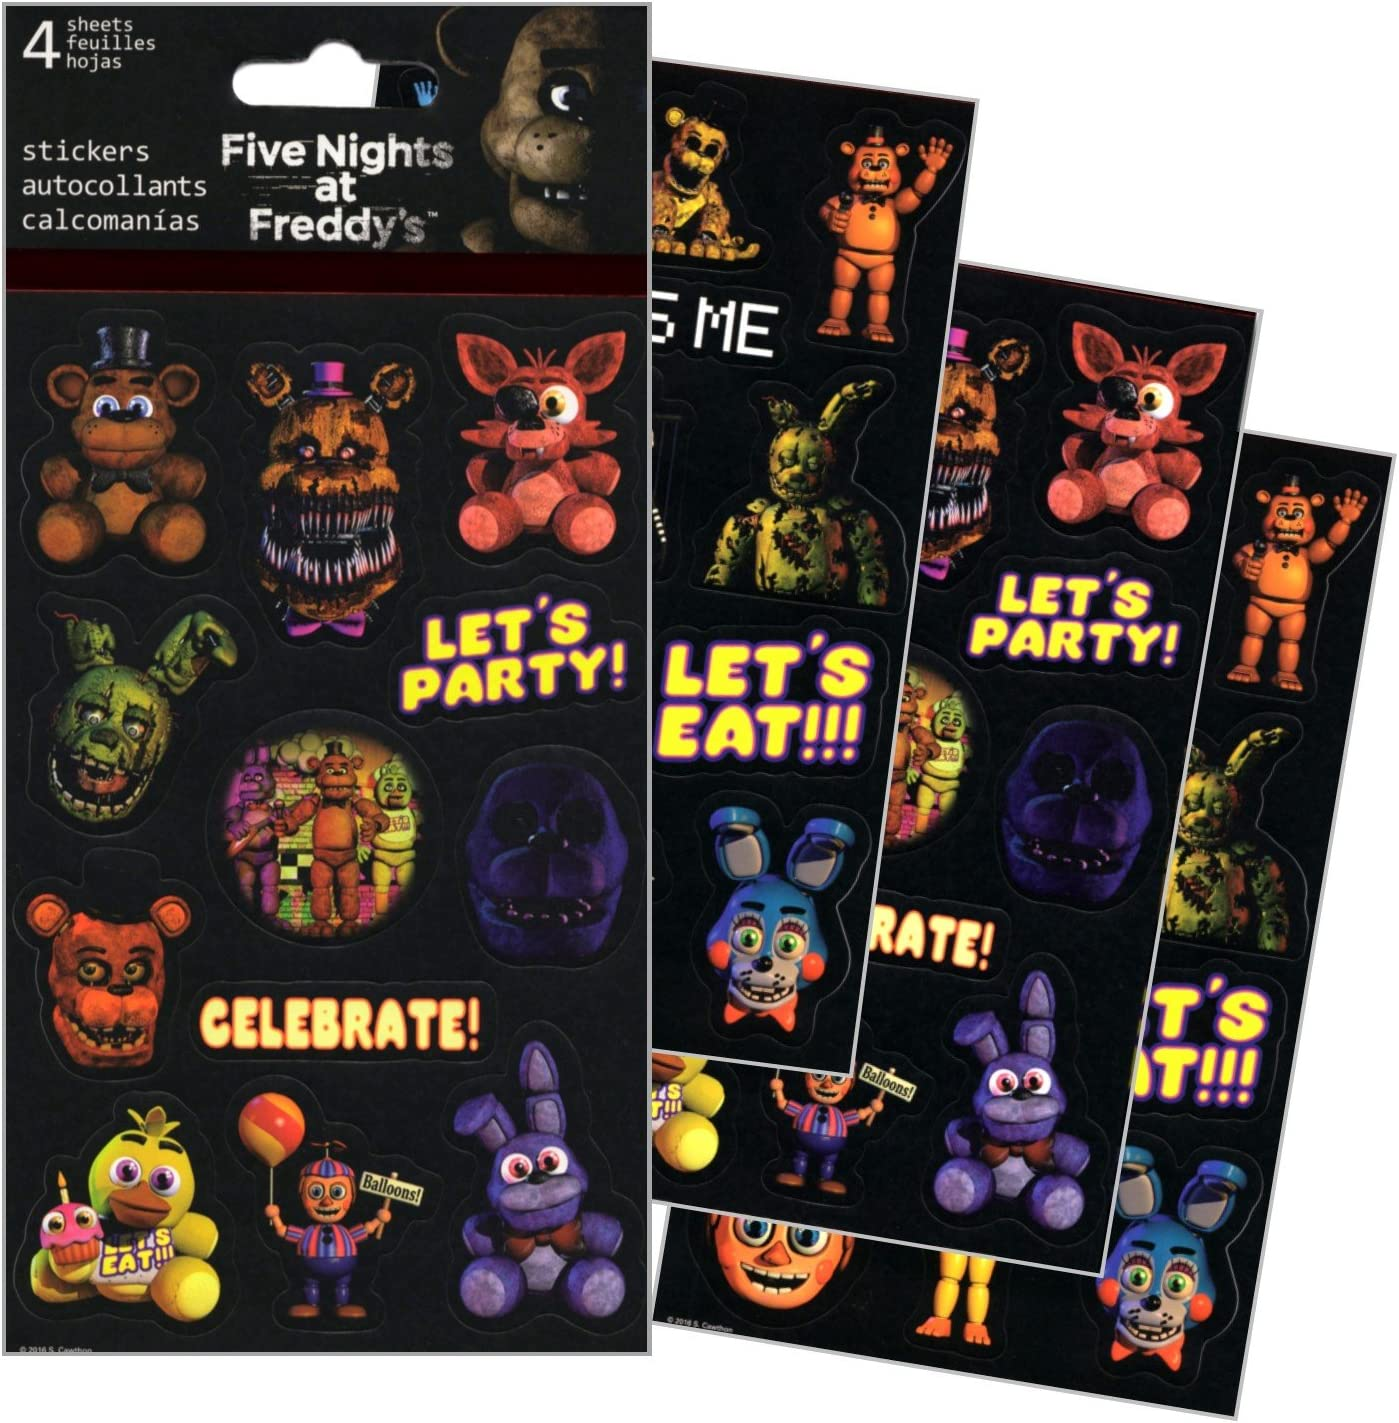 Five Nights at Freddys Stickers, 4 Sheets: Amazon.es: Juguetes y juegos